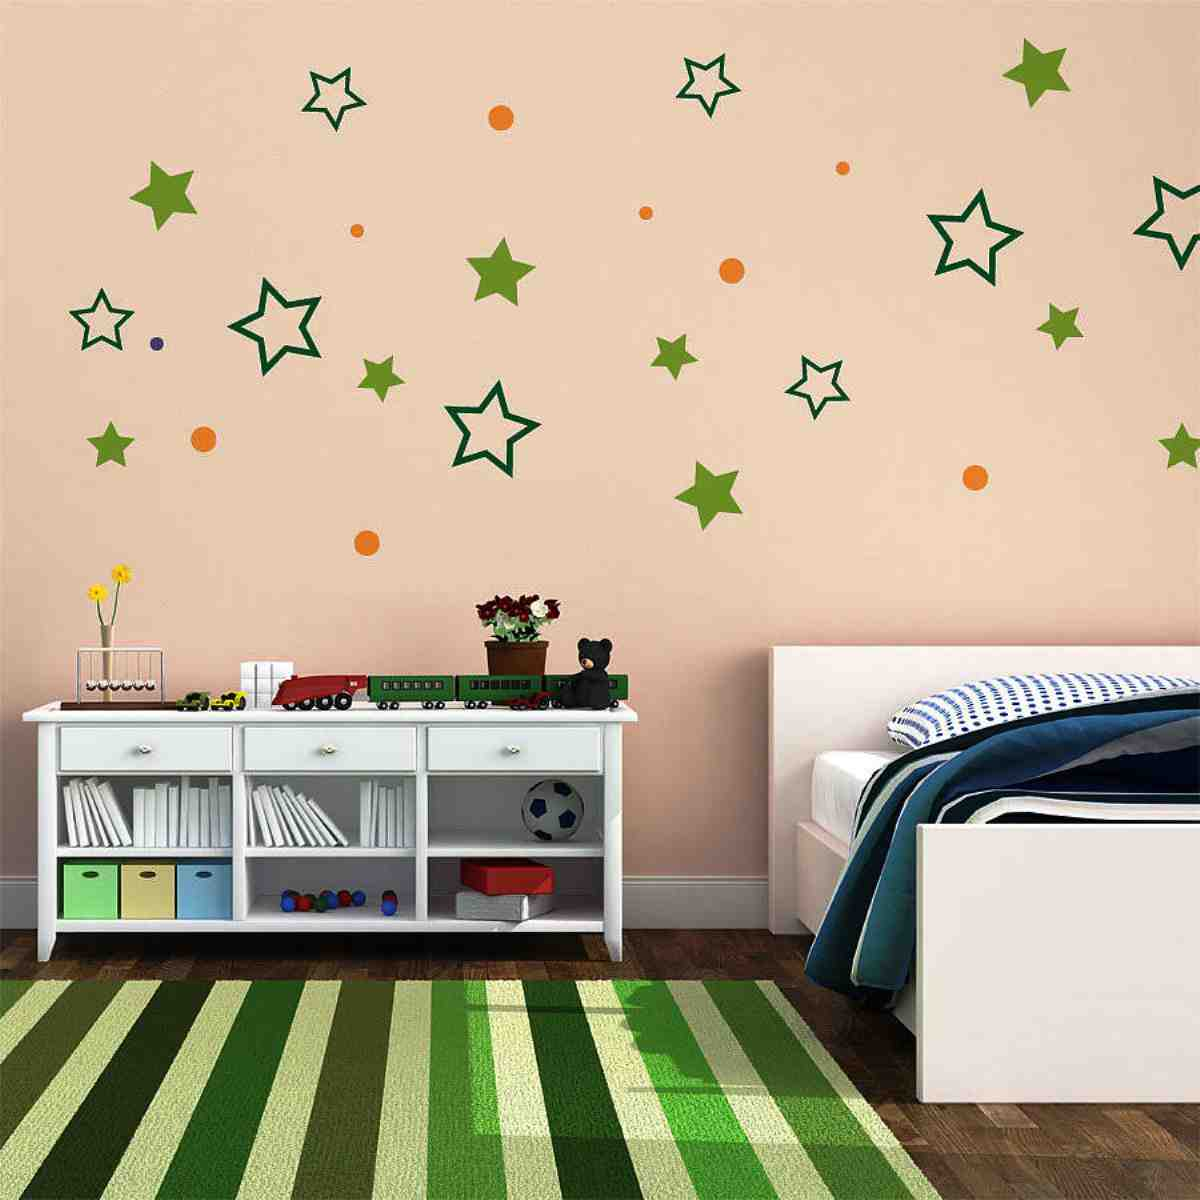 Diy wall decor ideas for bedroom decor ideasdecor ideas Kids room wall painting design